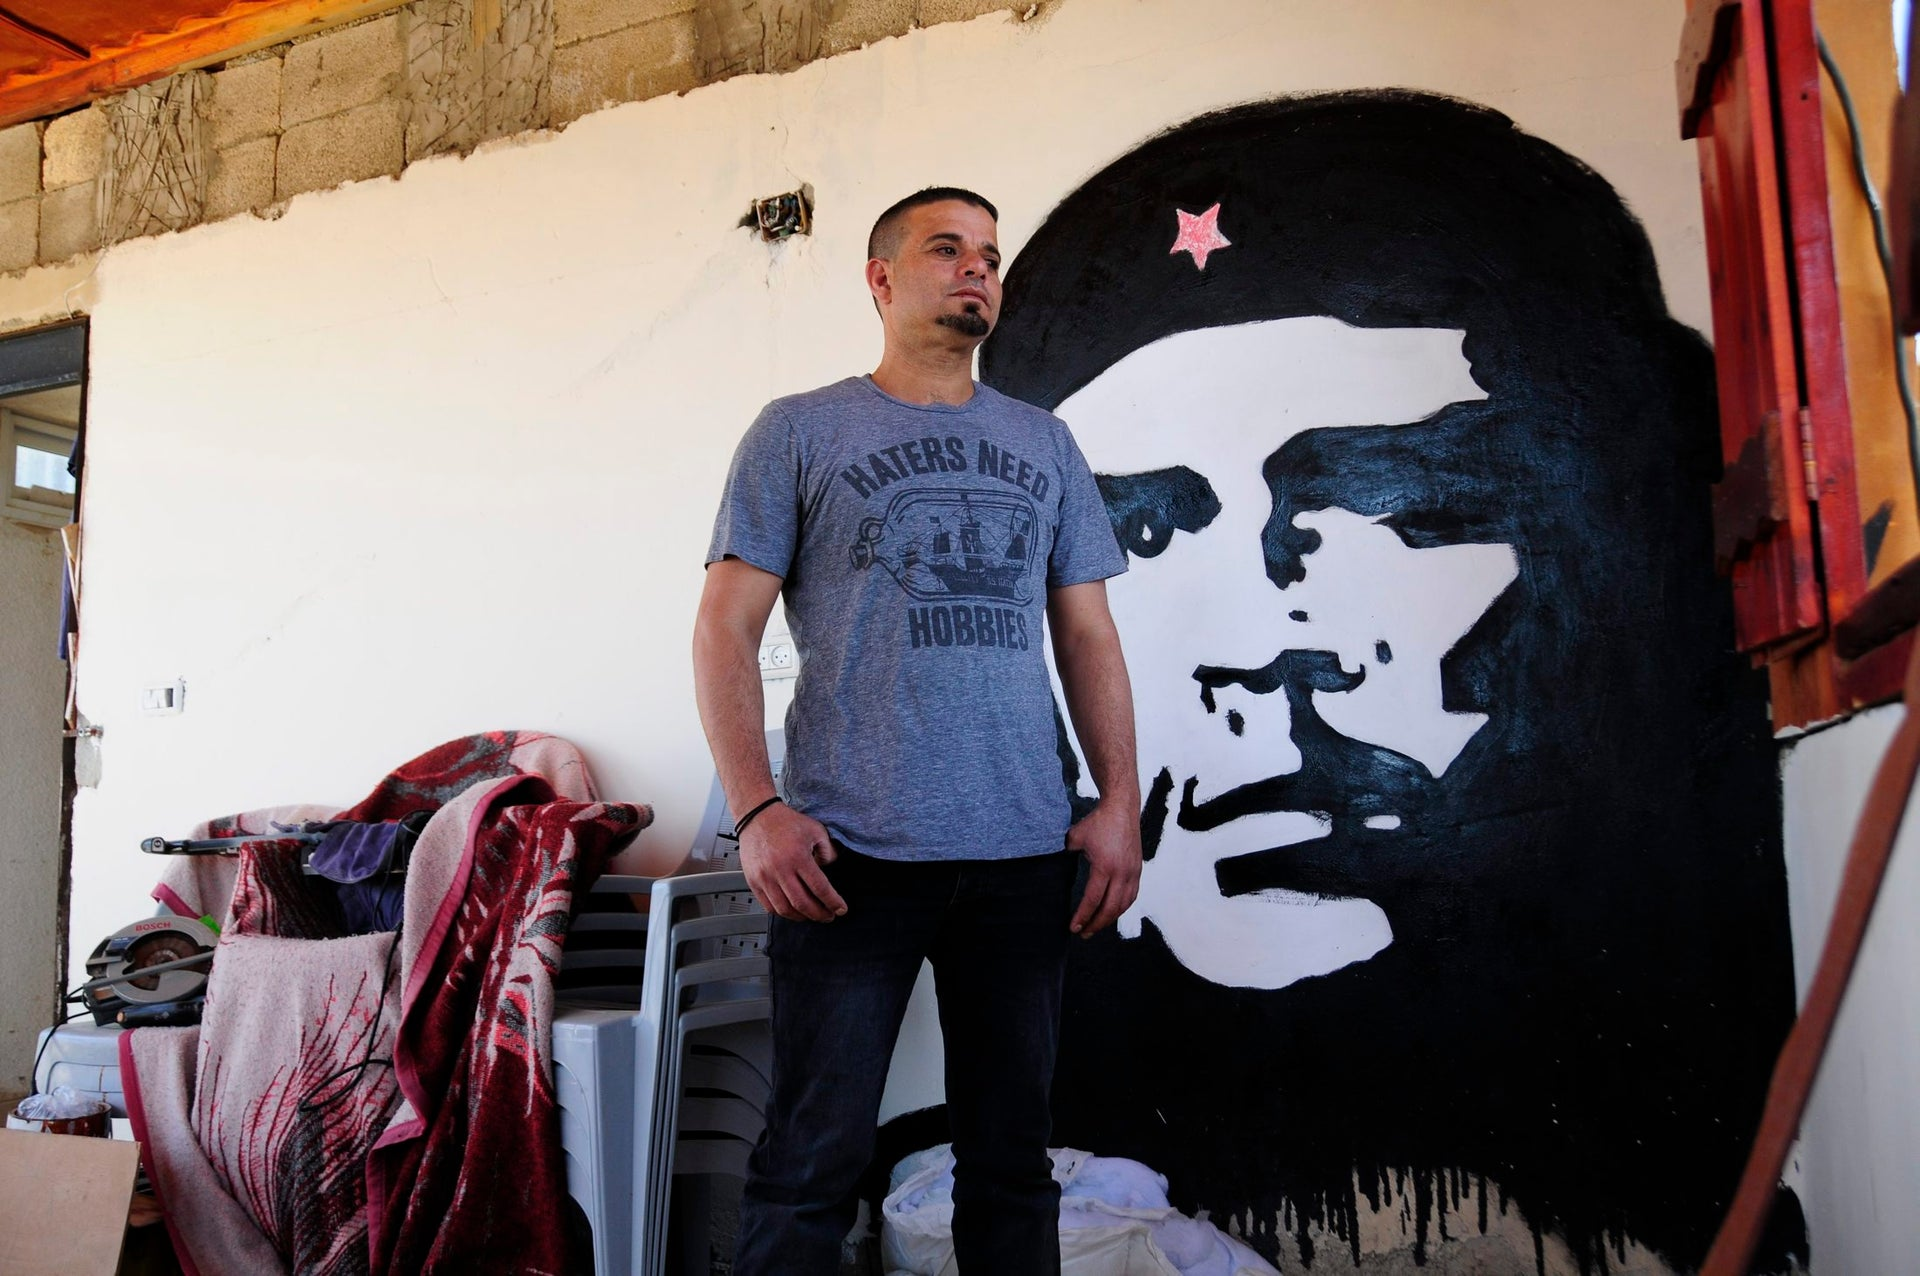 Political activist and skateboarding advocate Mohammed Othman standing in his home.